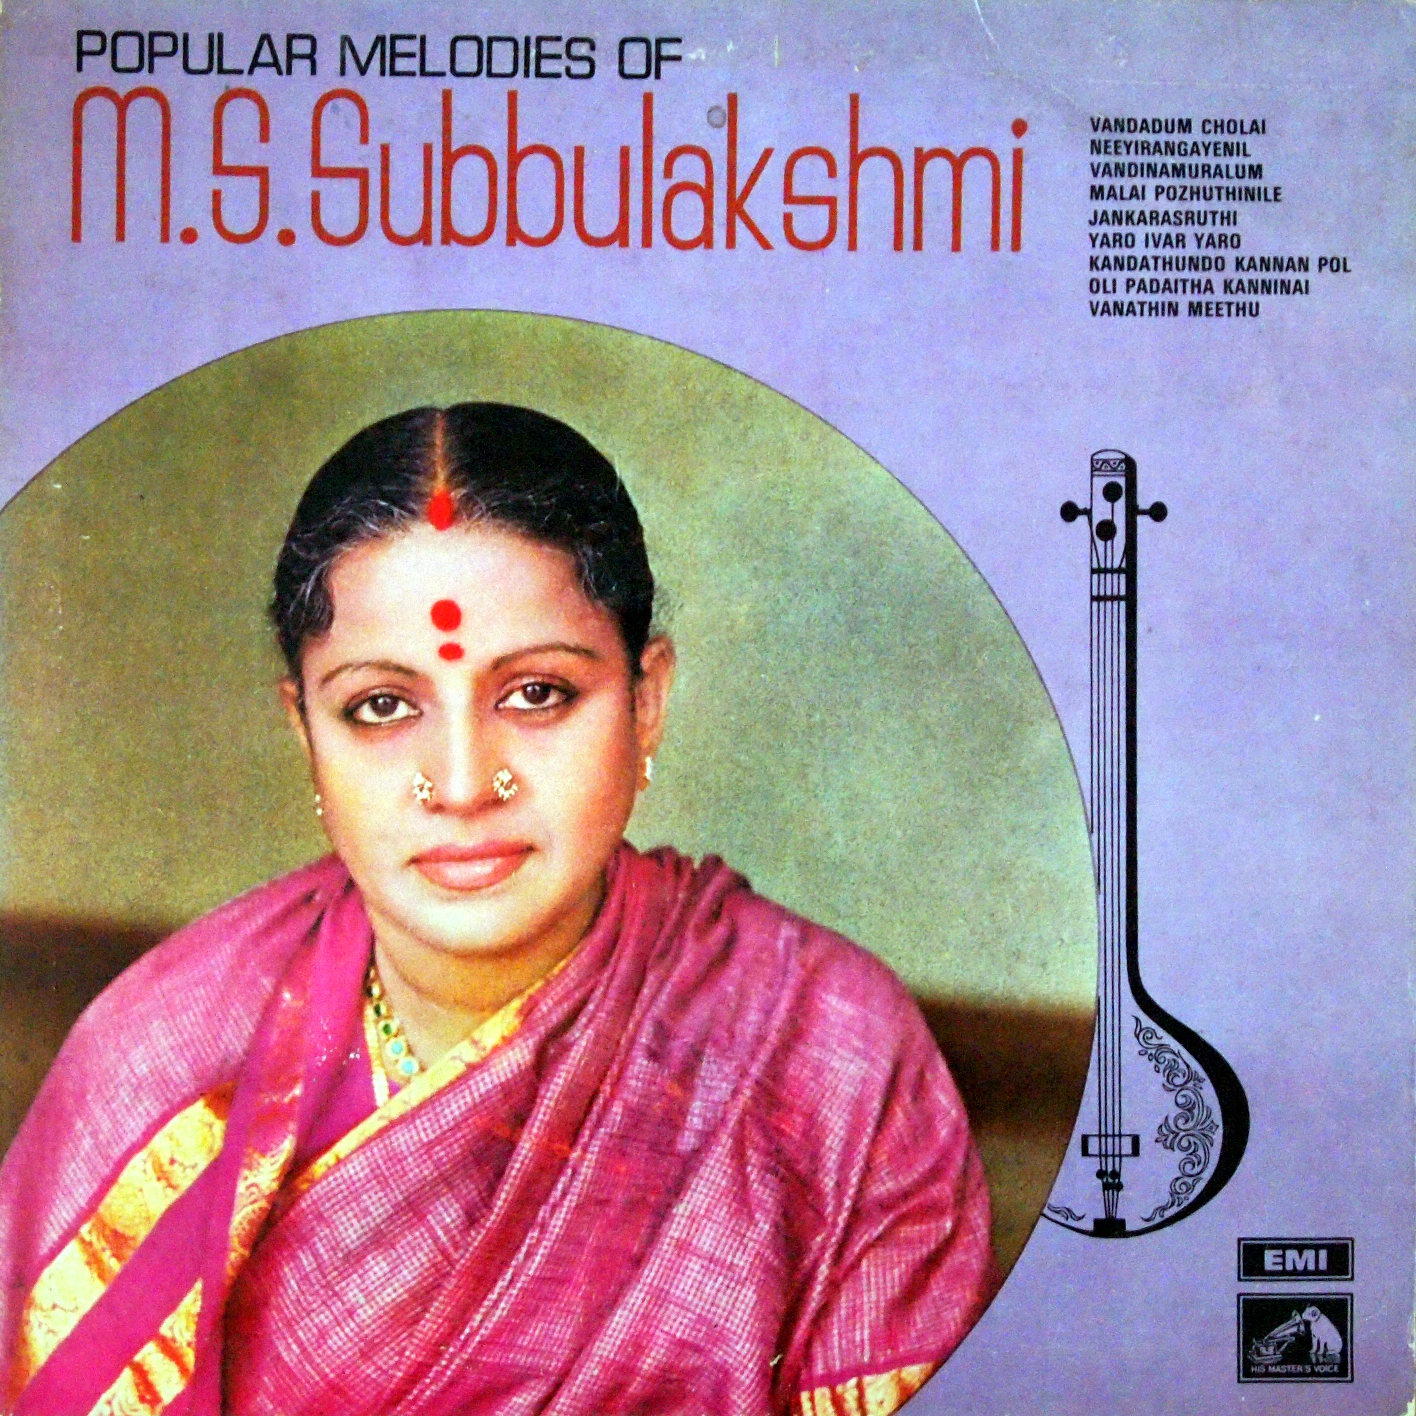 subbulakshmi suprabhatam mp3 downloadsubbulakshmi suprabhatam, subbulakshmi bhaja govindam, subbulakshmi biography, subbulakshmi actress, subbulakshmi commodity, subbulakshmi songs, subbulakshmi gowthami, subbulakshmi gautami, subbulakshmi pivot, subbulakshmi jagadeesan, subbulakshmi kamal hassan, subbulakshmi gowthami daughter, subbulakshmi singer, subbulakshmi suprabhatam mp3 download, subbulakshmi kamal hassan daughter, subbulakshmi daughter of gautami, subbulakshmi ms songs, subbulakshmi hanuman chalisa, subbulakshmi vishnu sahasranamam, subbulakshmi ms